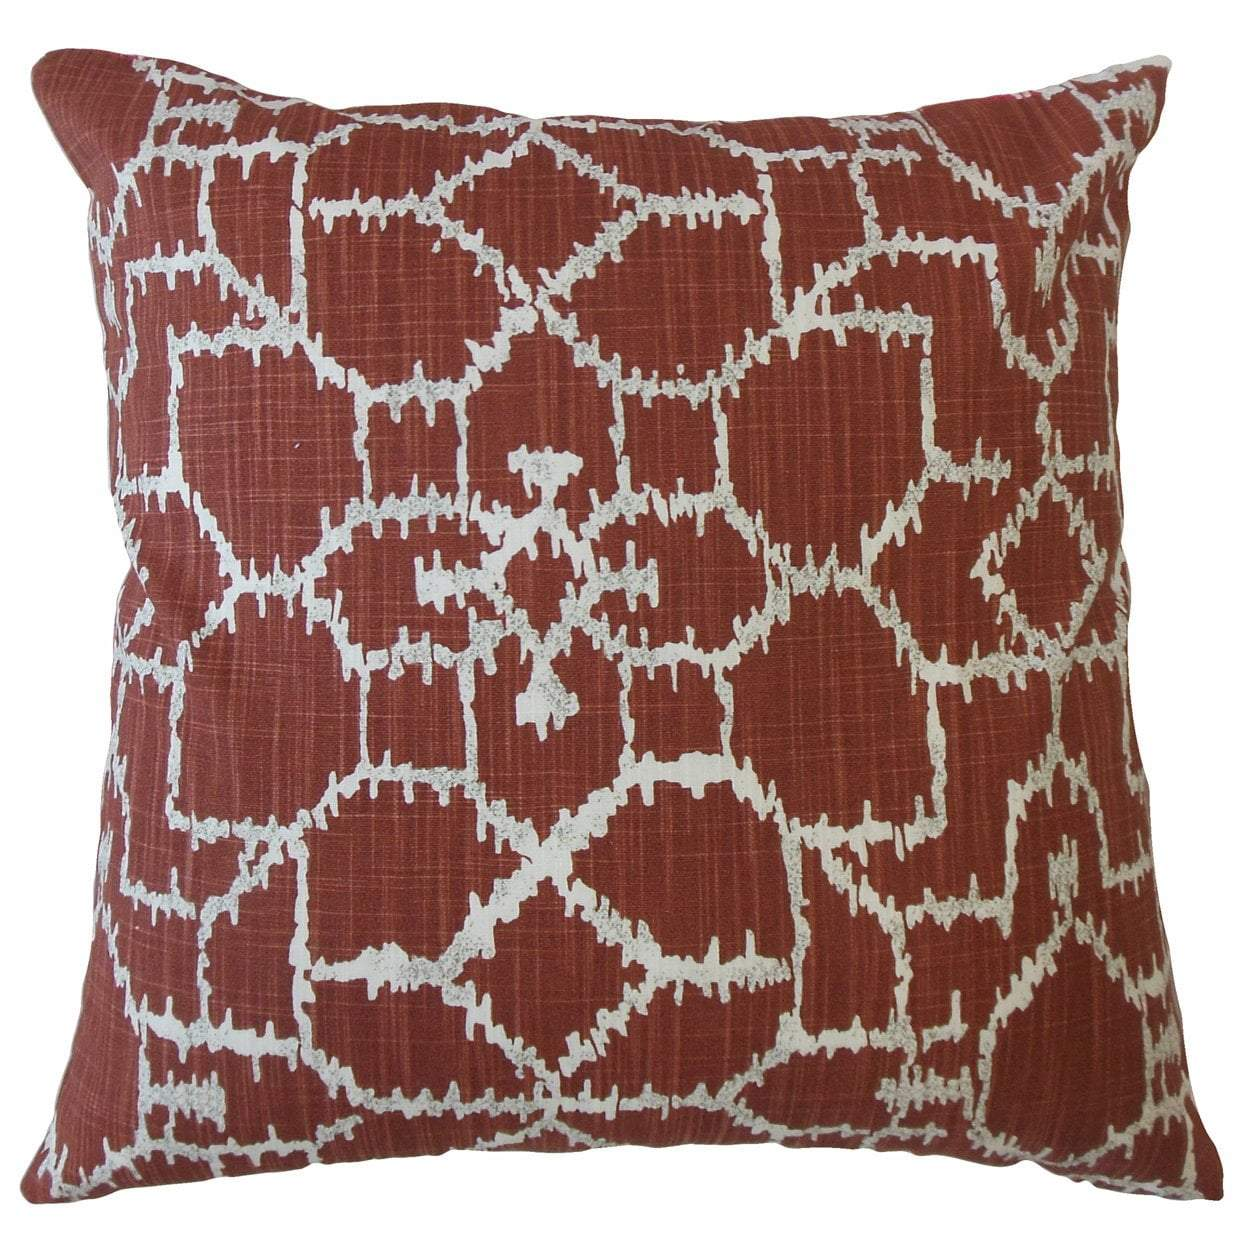 Speck Throw Pillow Cover